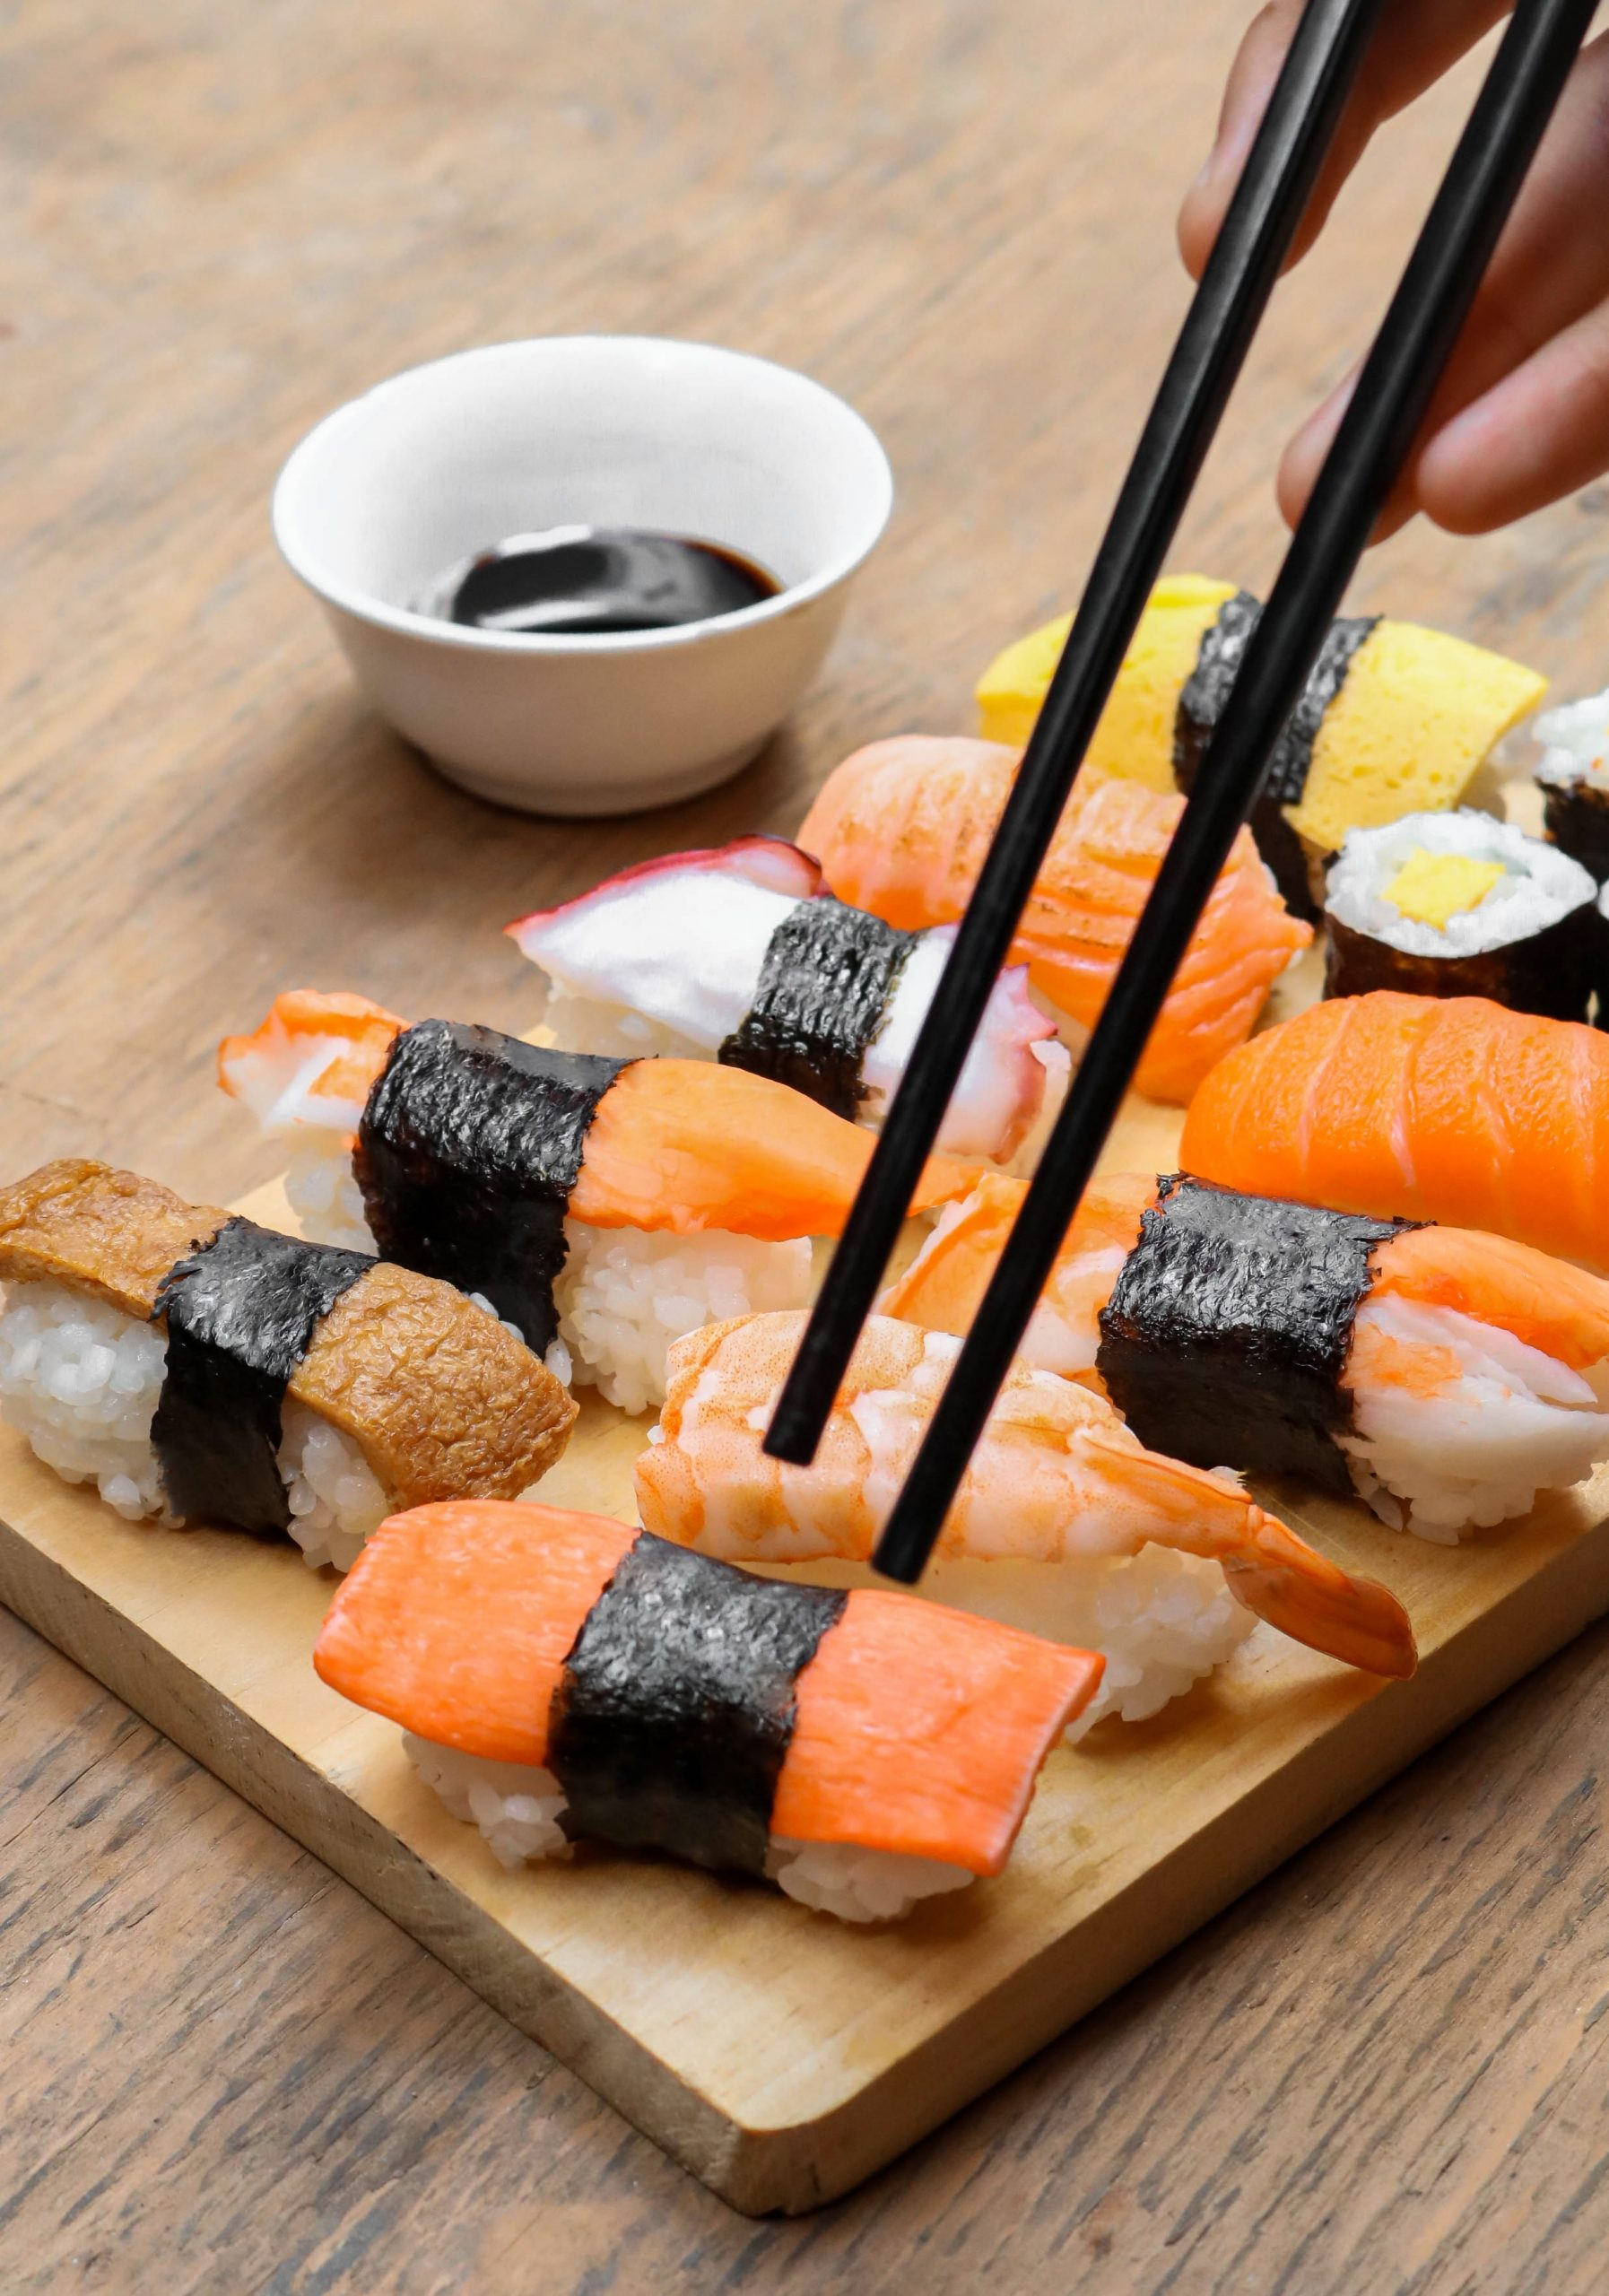 Top 5 Best Online Sushi delivery services in Singapore 2020